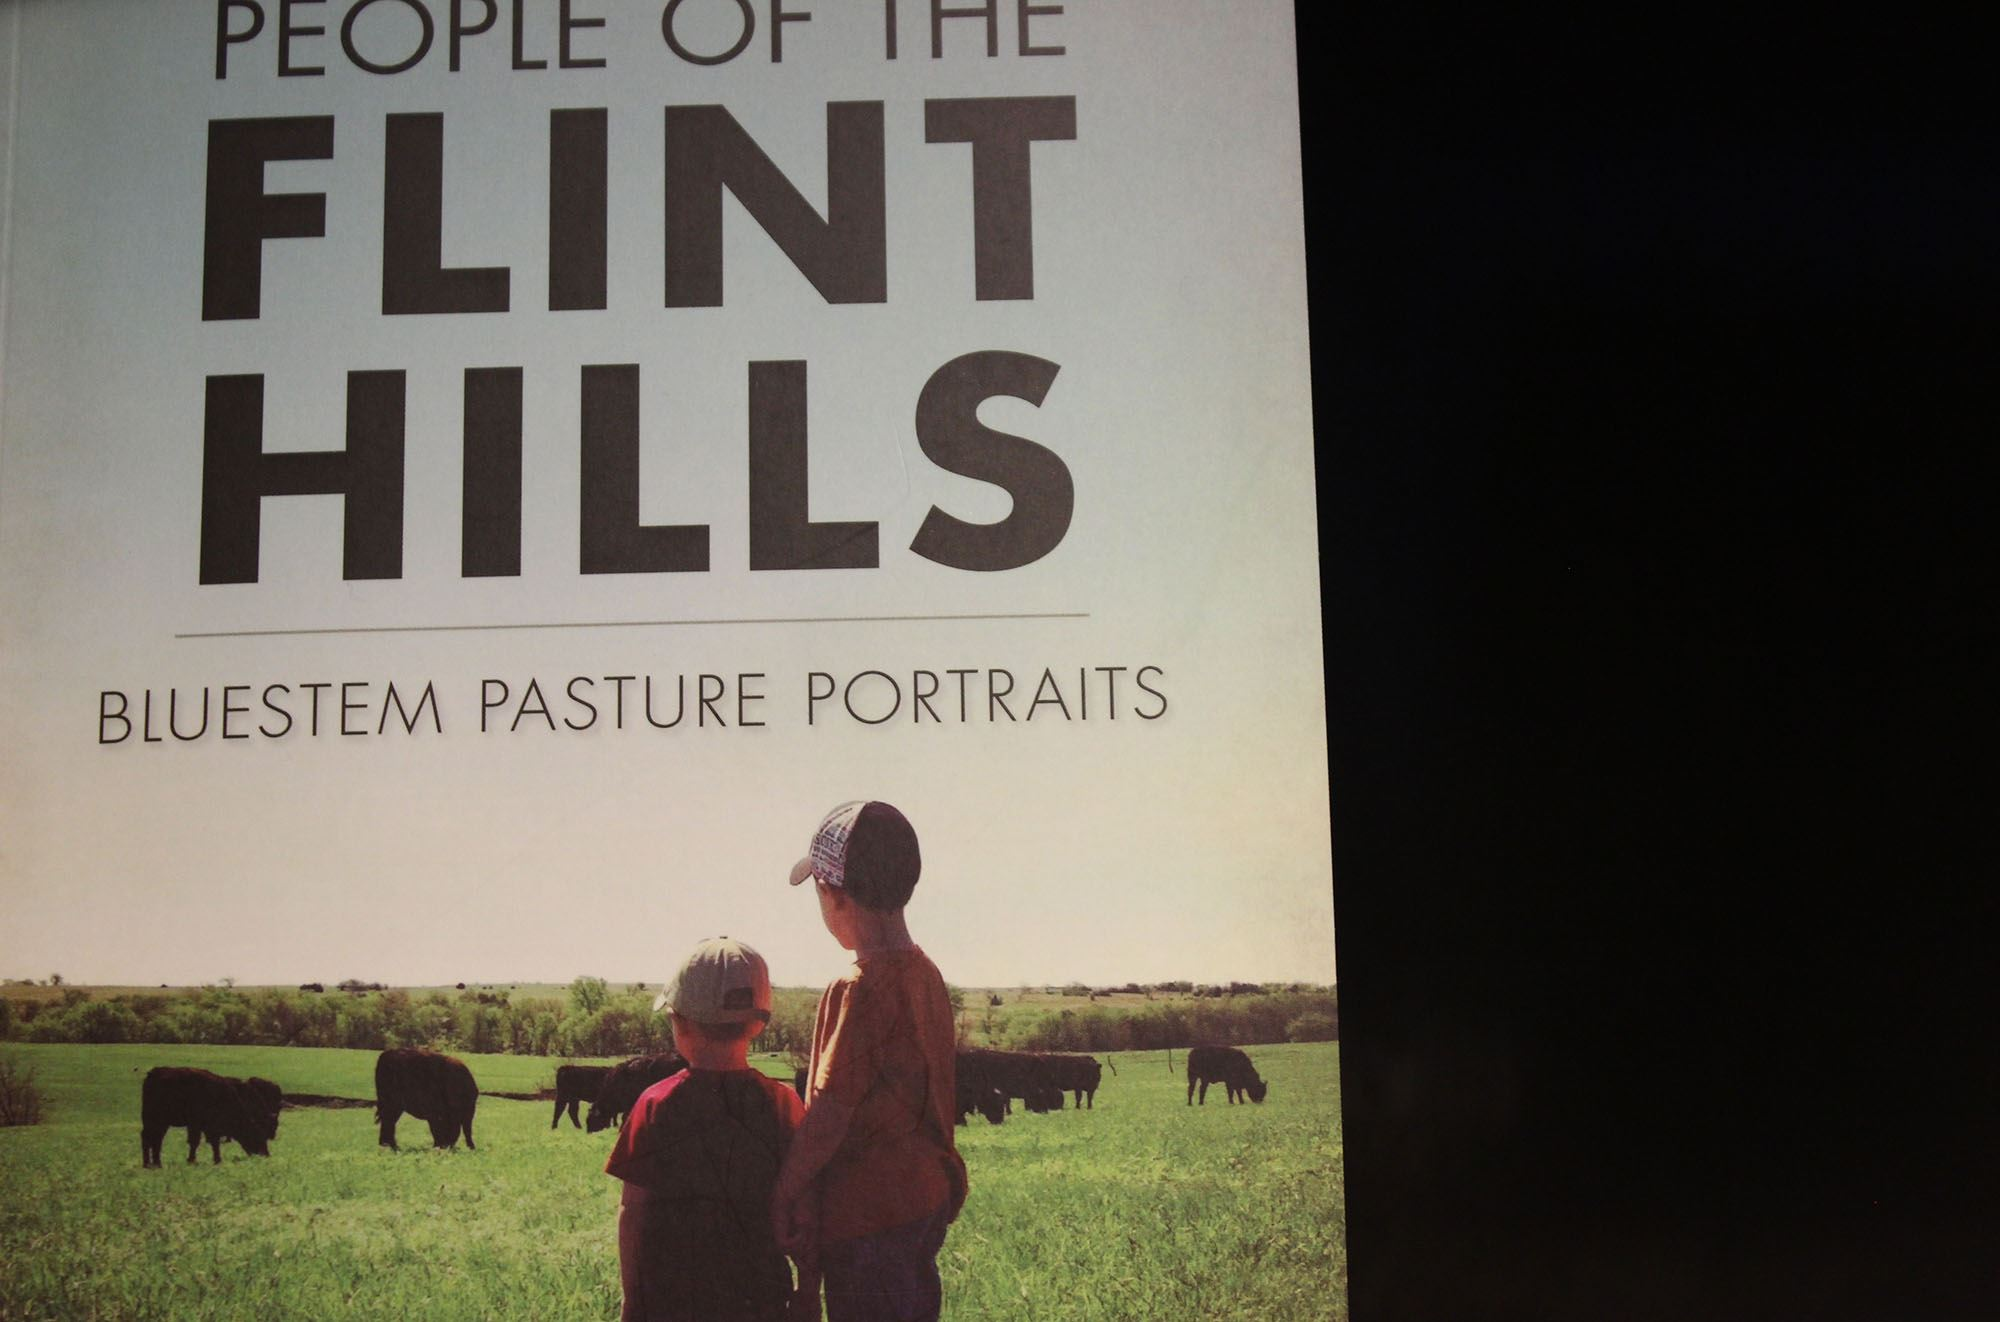 The cover of a book called People of the Flint Hills